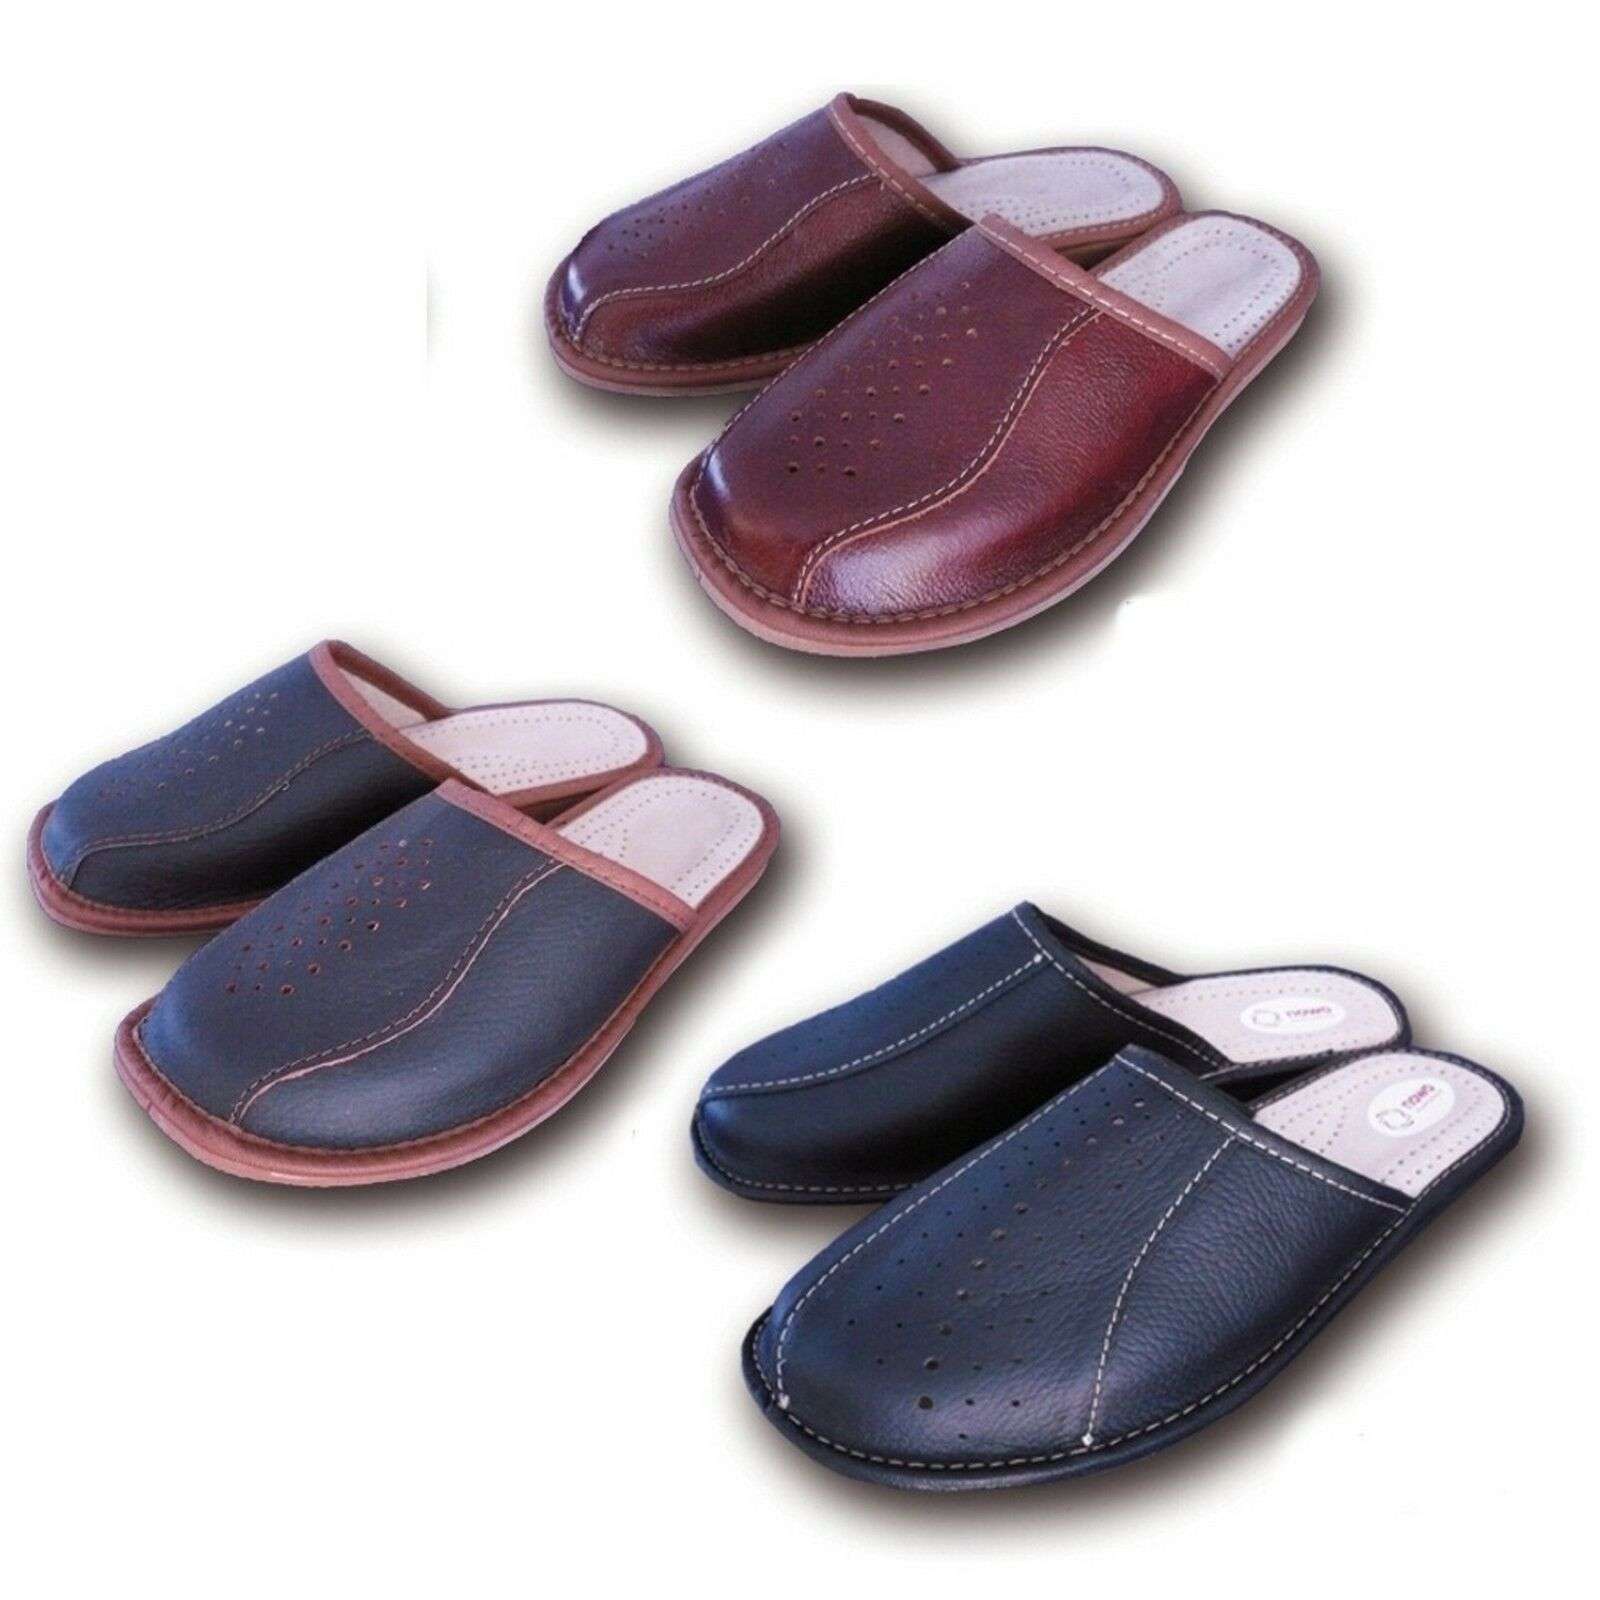 New Men`s Leather Slippers Black Brown 8 Slip On Shoes 7 8 Brown  9 9.5 10.5 11 11.5 10e74e